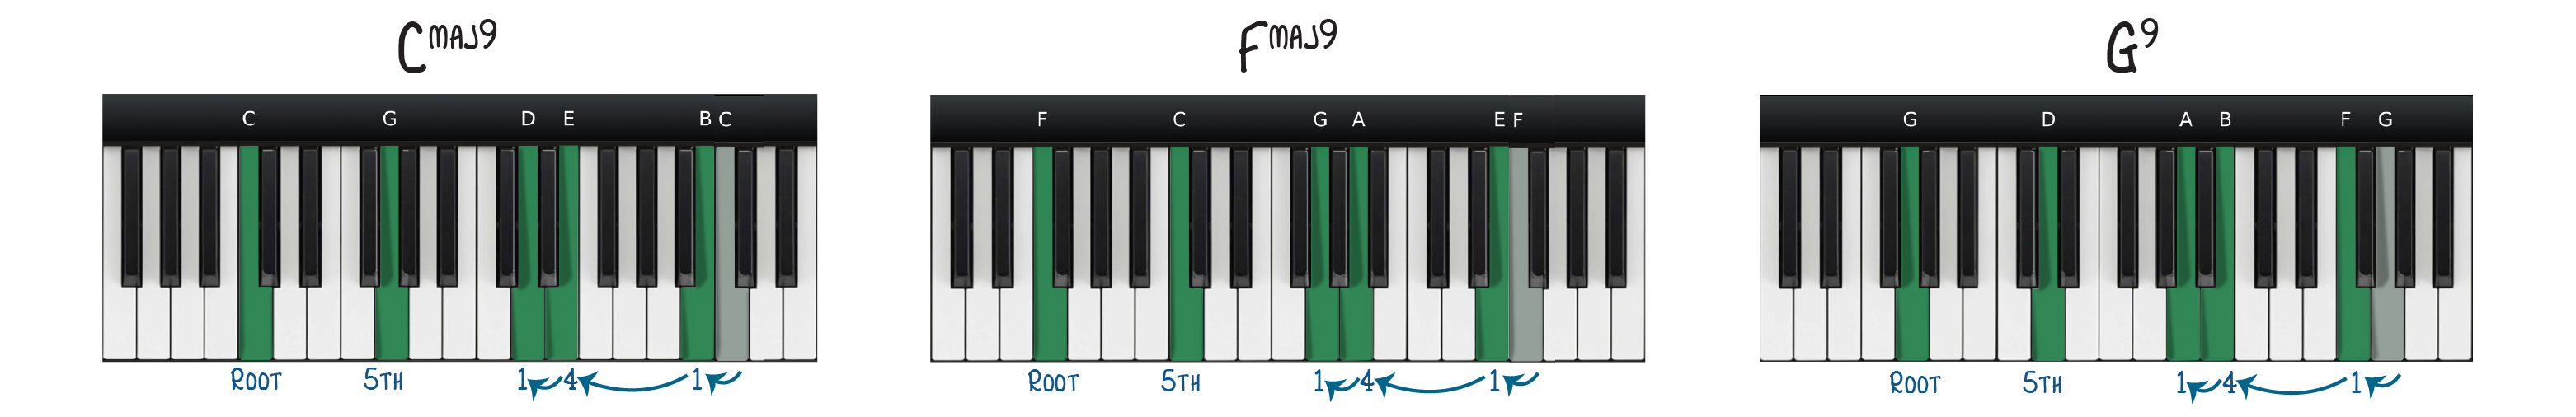 A different set of chords